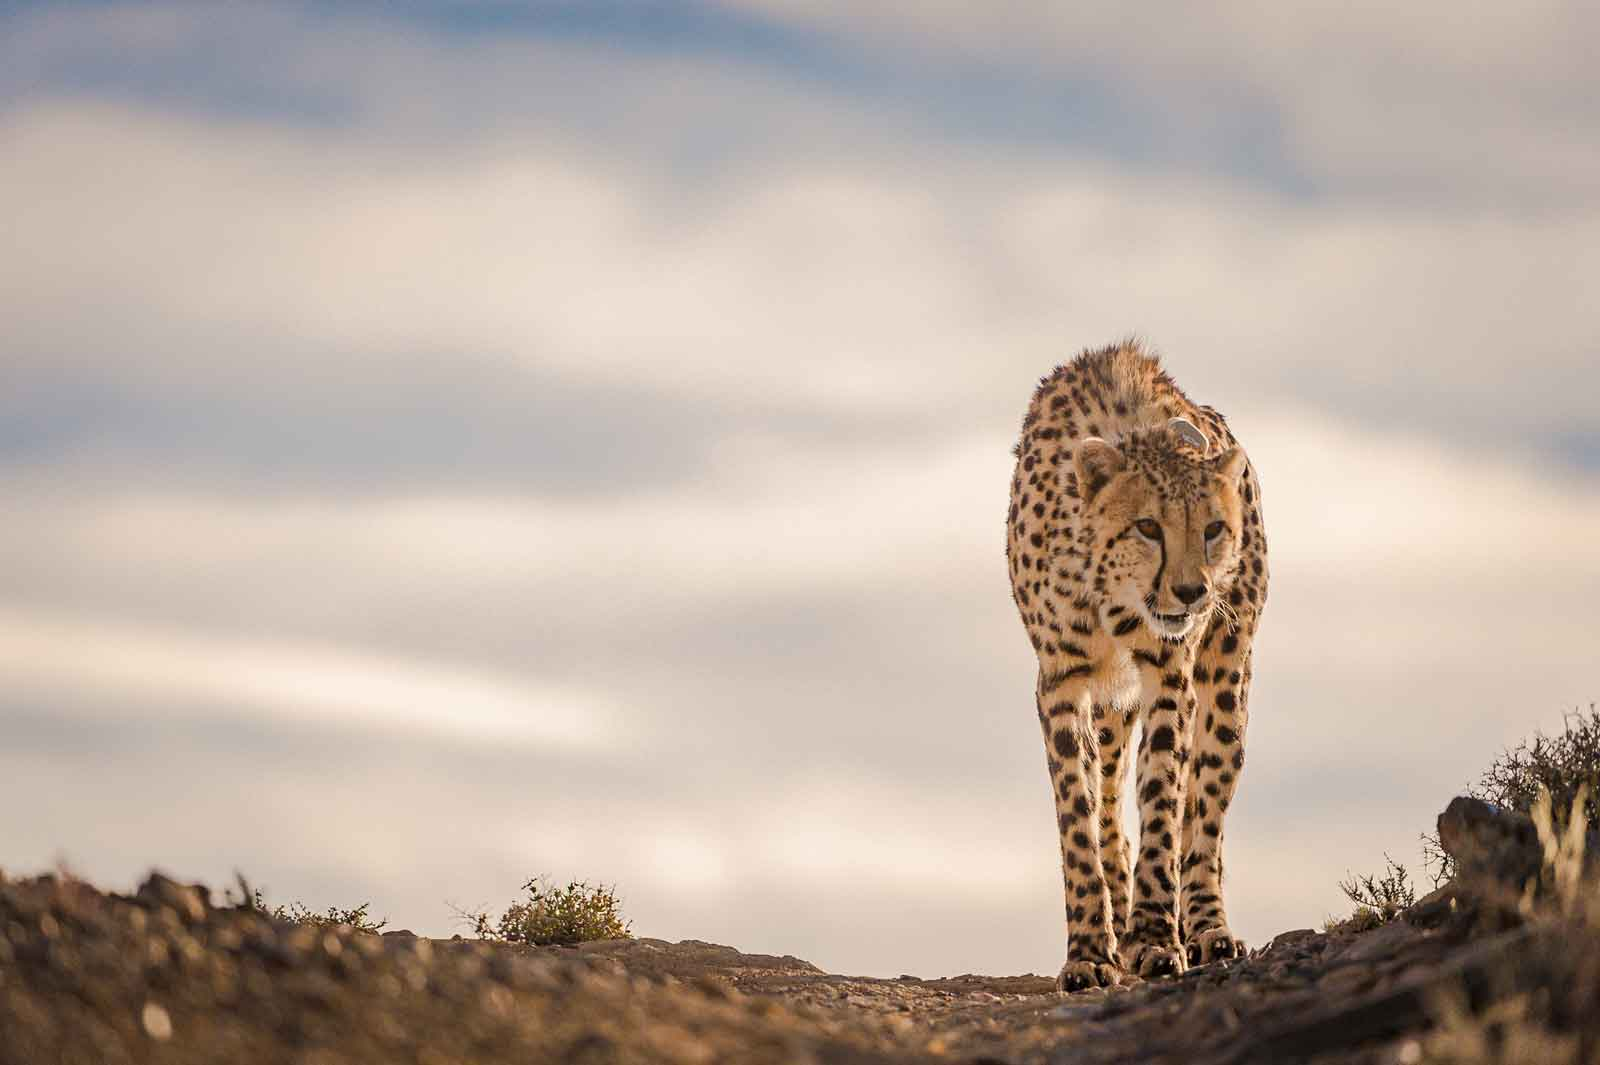 Cheetah in the Karoo